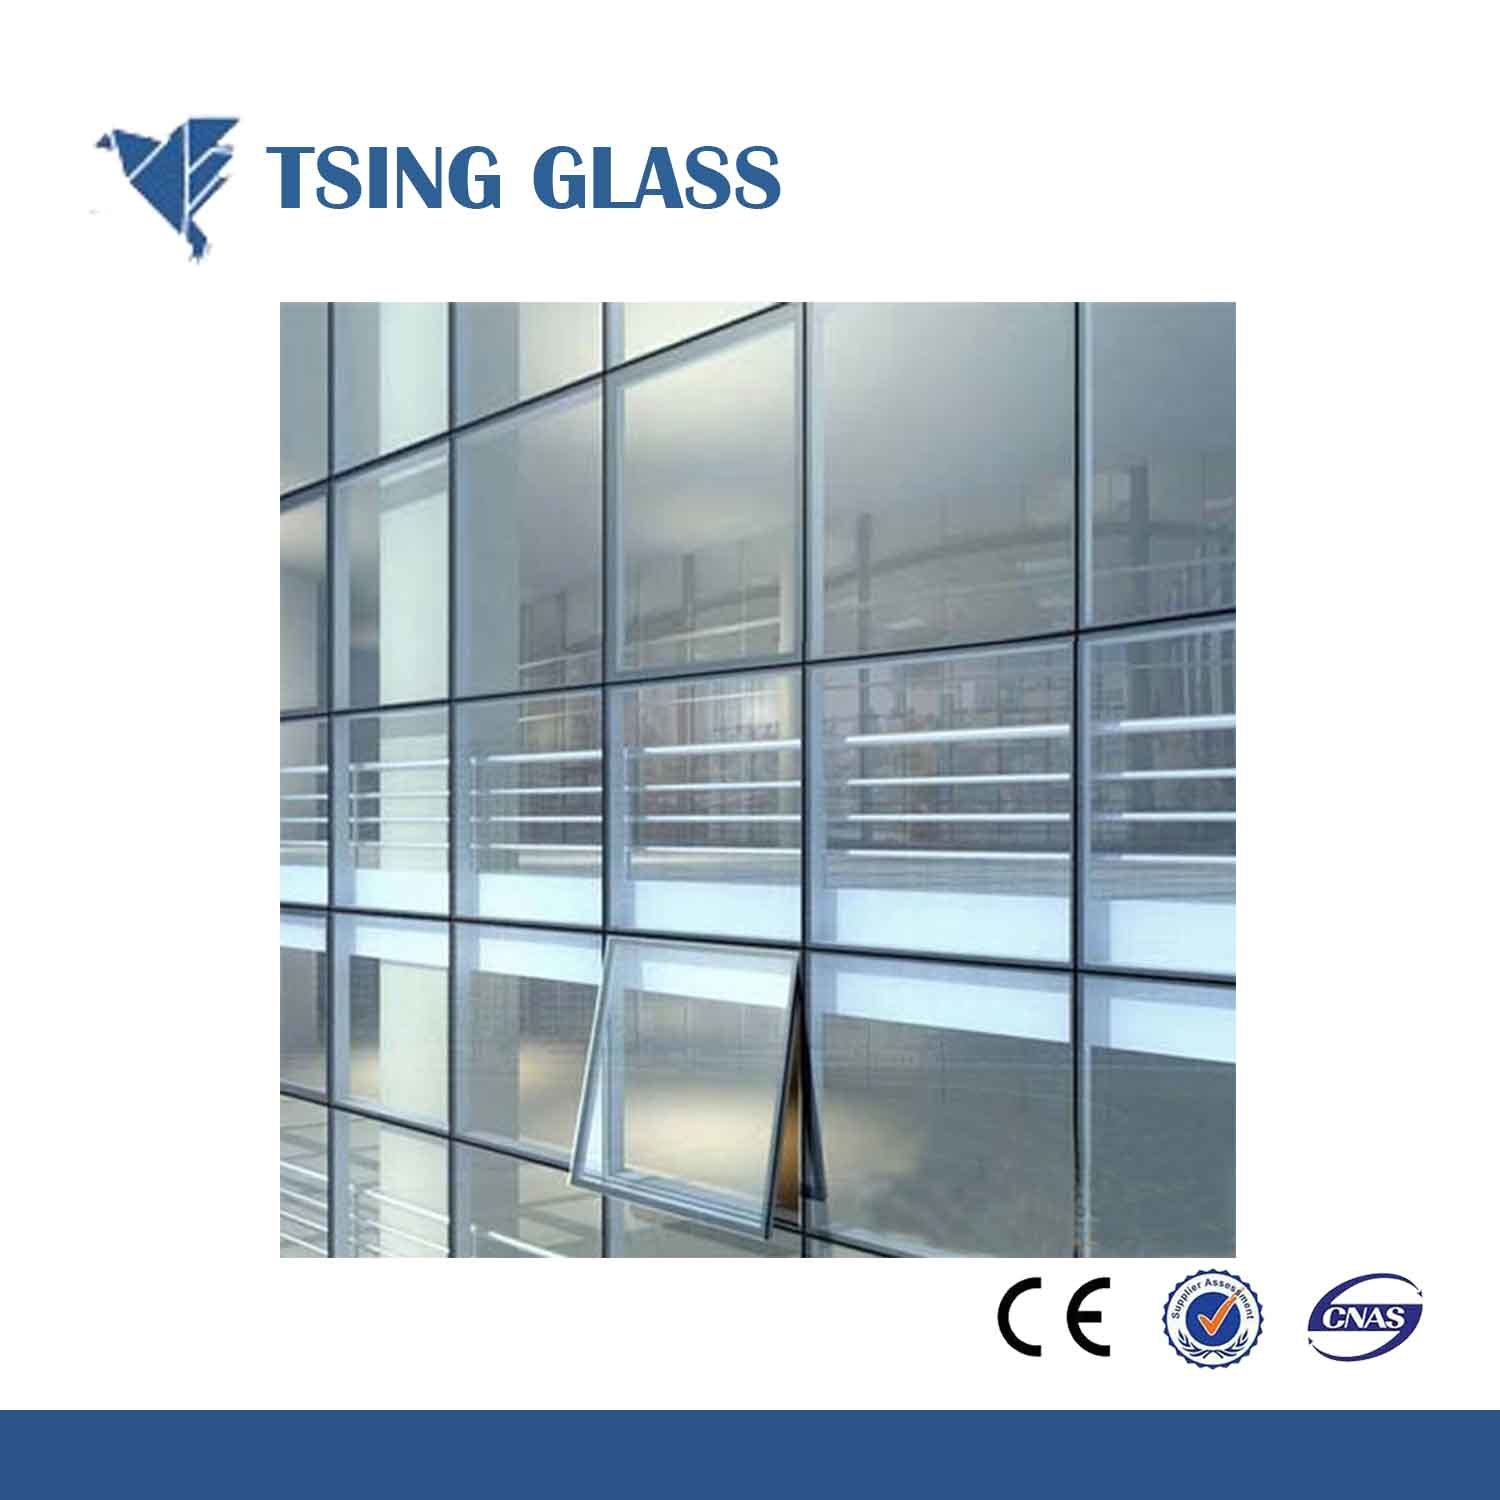 China Hollow Glass / Double Glazing Glass / Insulated Glass for ...